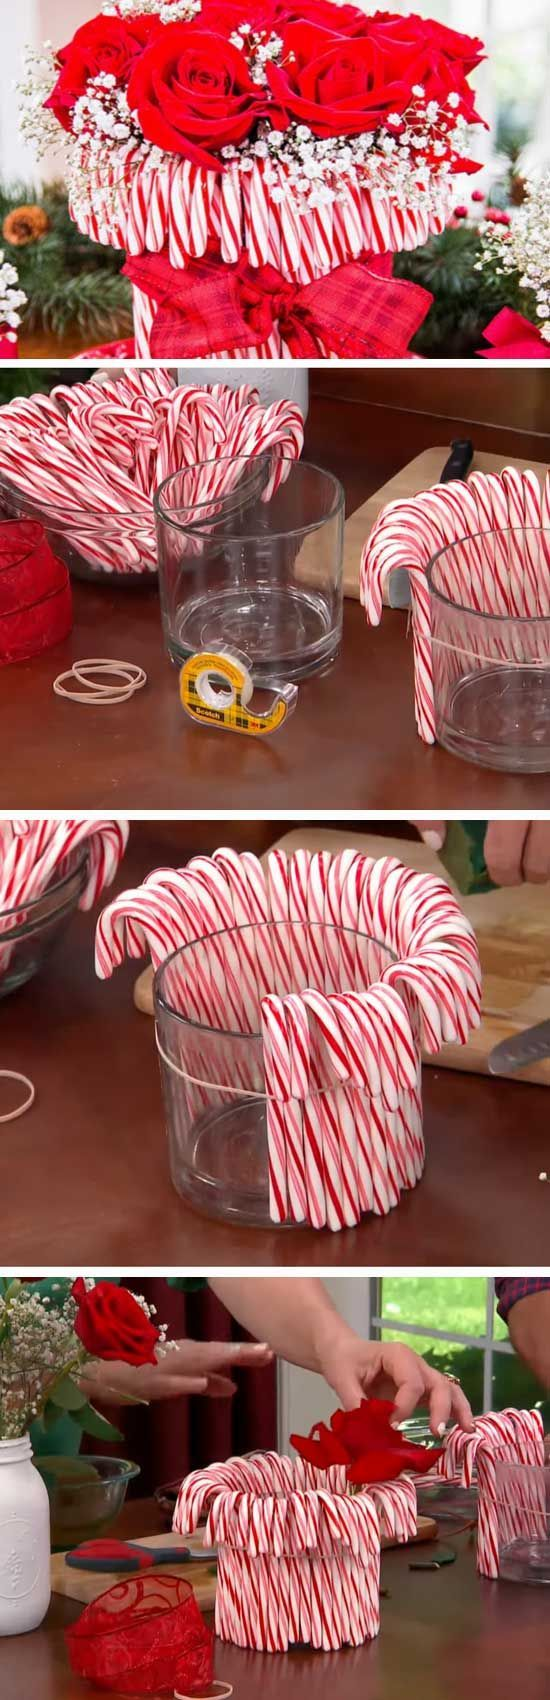 Candy Cane Vase 20 DIY Christmas Party Ideas for Adults